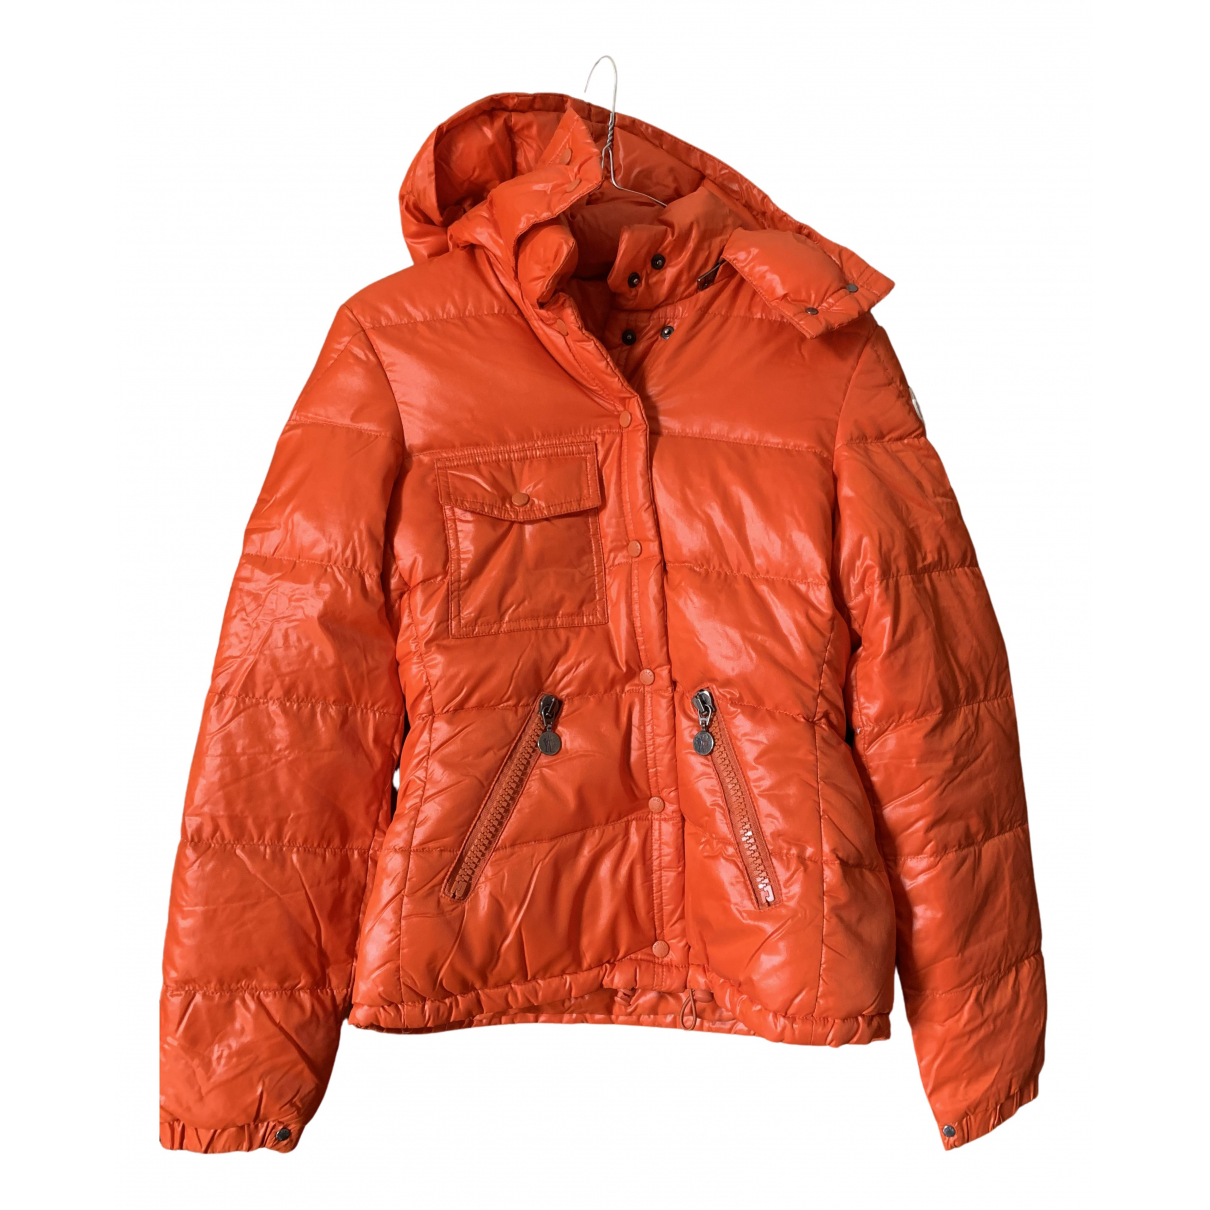 Moncler Classic Orange jacket for Women 0 0-5